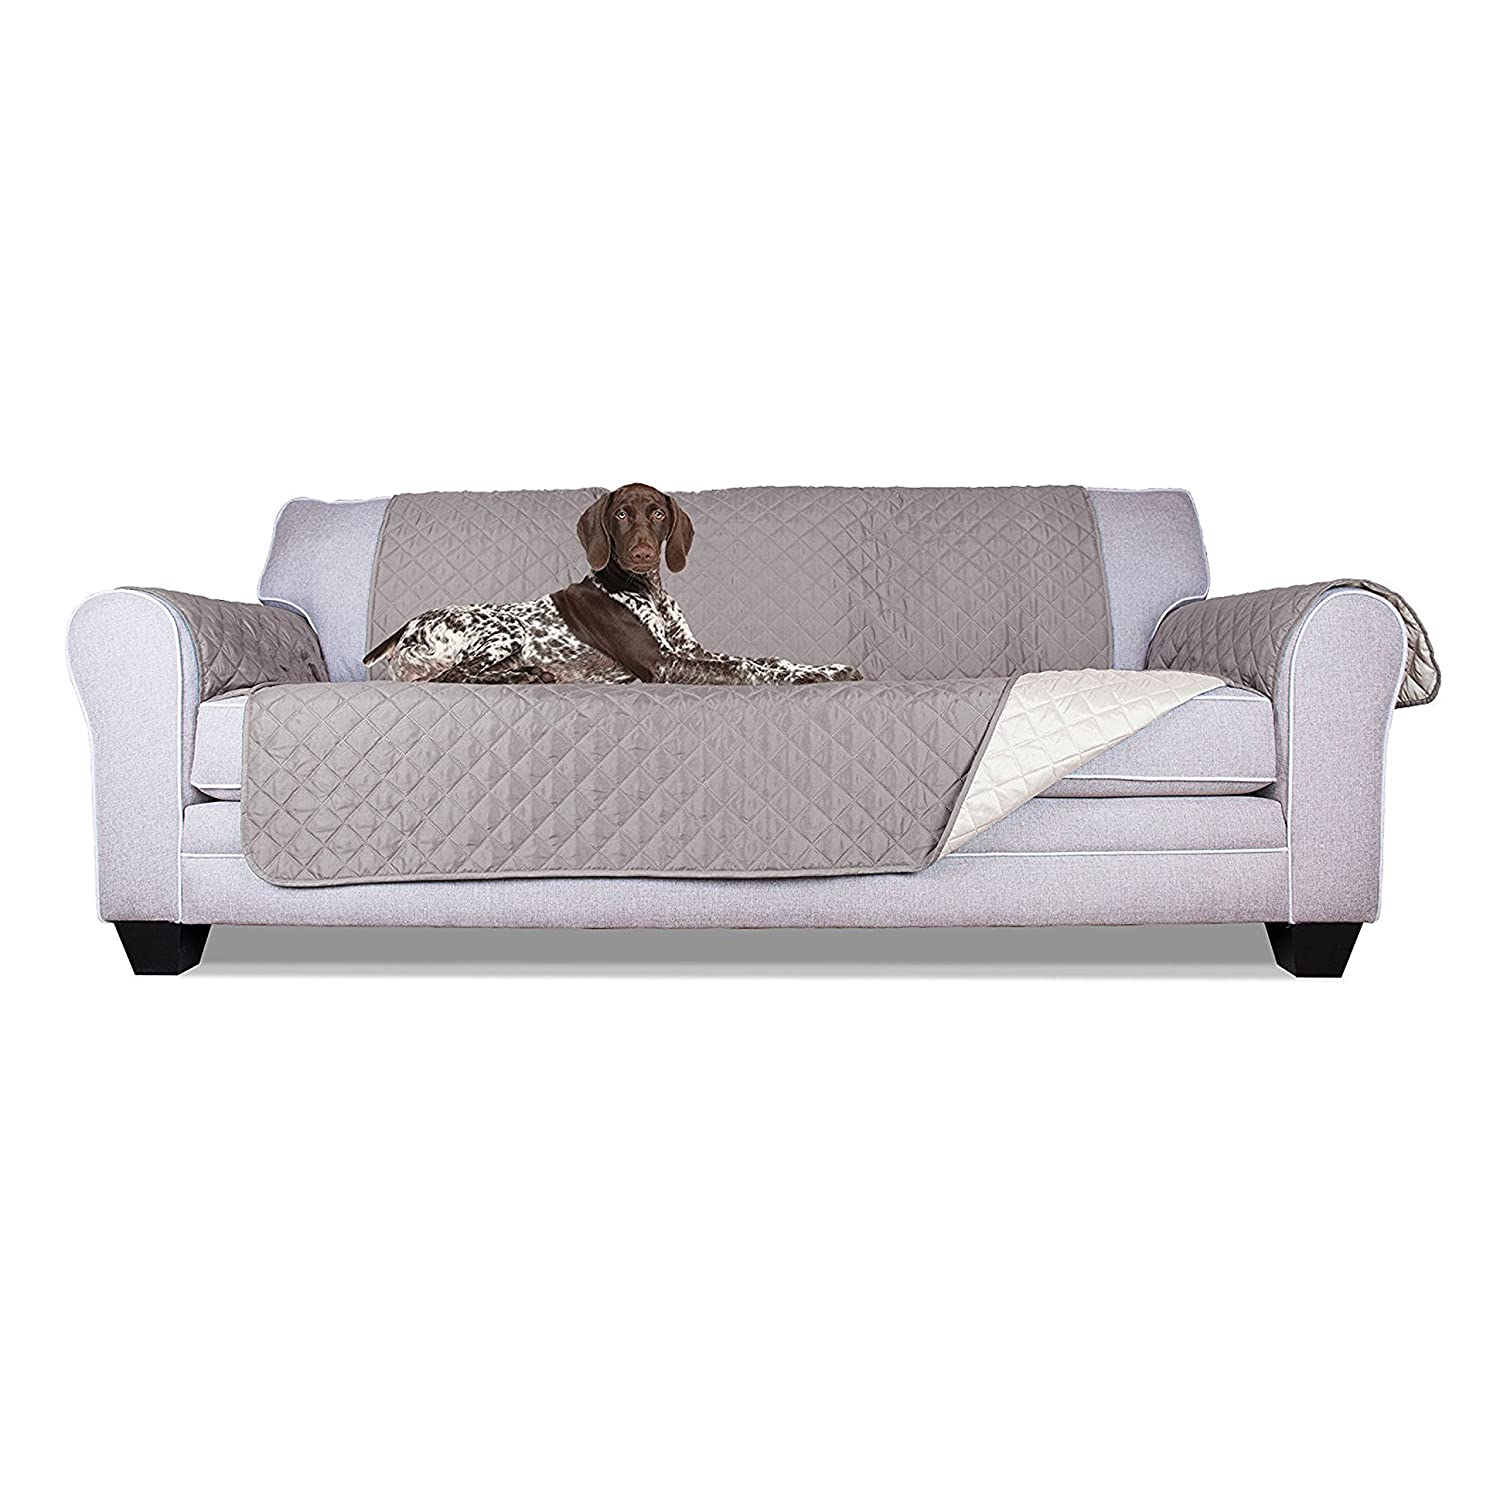 hot sale ALEKO PSC03G 110 x 71 Inches Pet Sofa Slipcover Spill